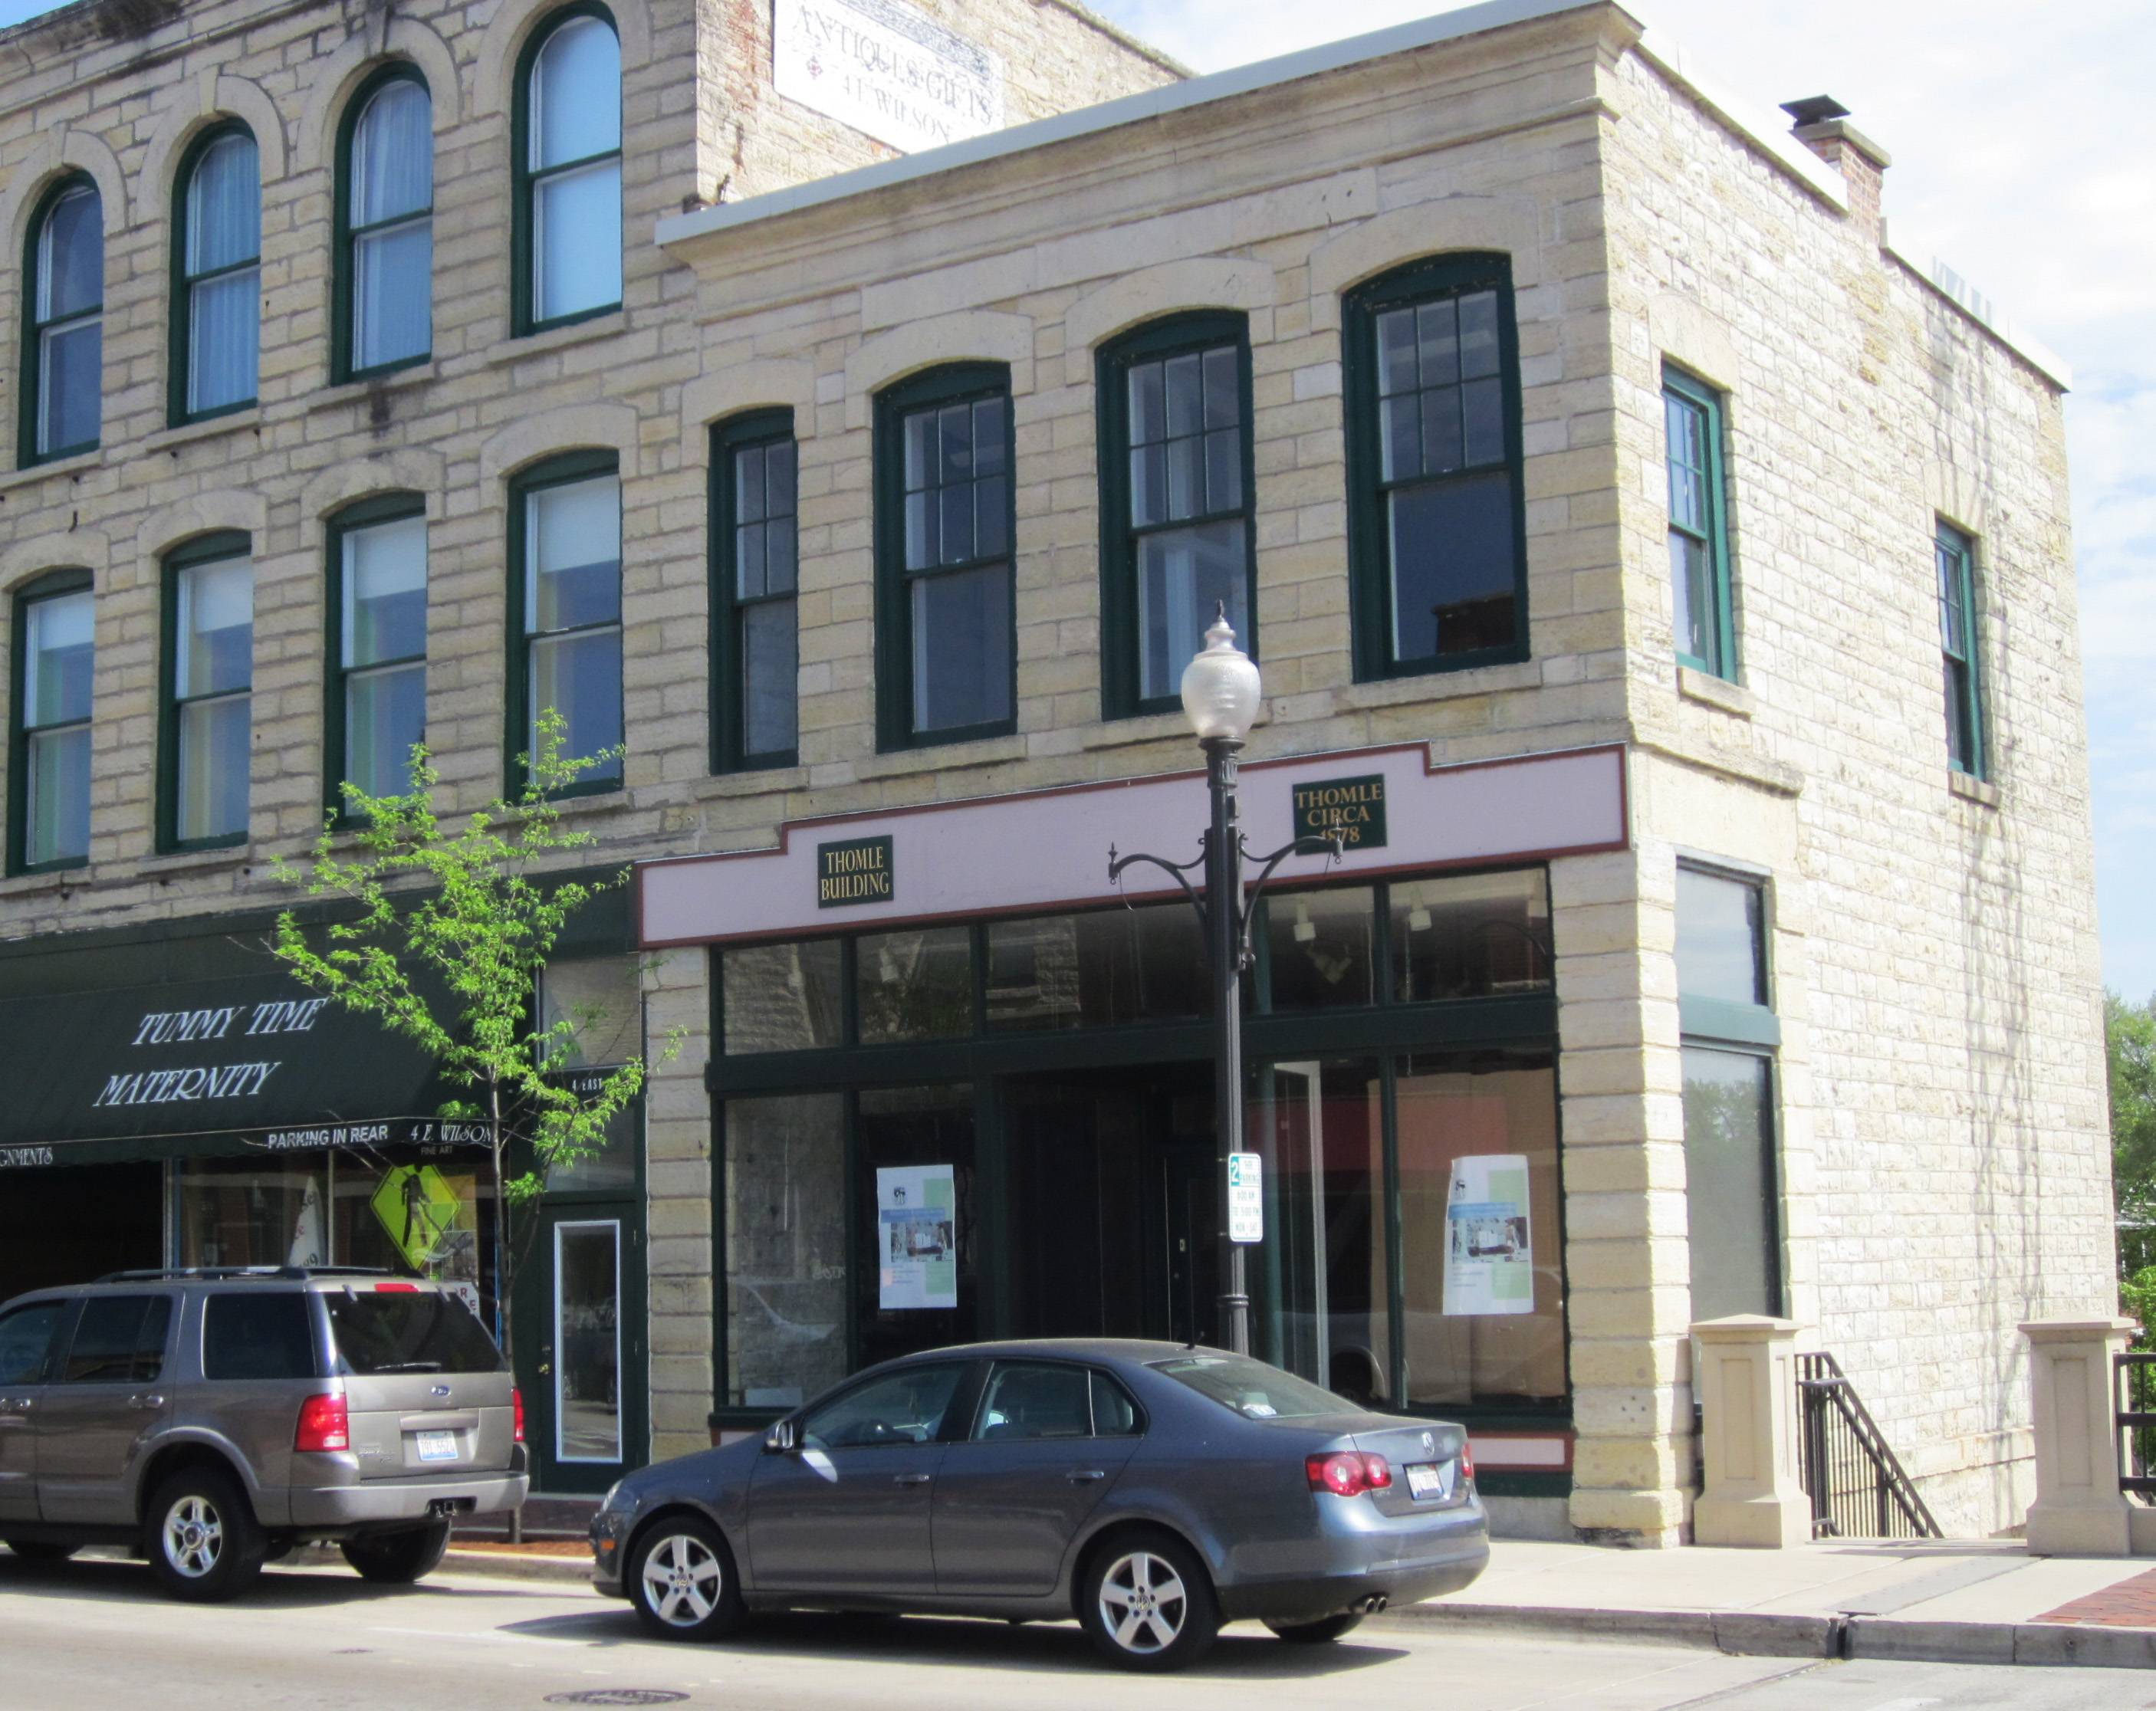 A St. Charles development firm has proposed combining the city-owned Thomle Building, 2 E. Wilson St. in Batavia, and the privately owned building next door, to create restaurant and residential space. It is seeking money from the city to do so.